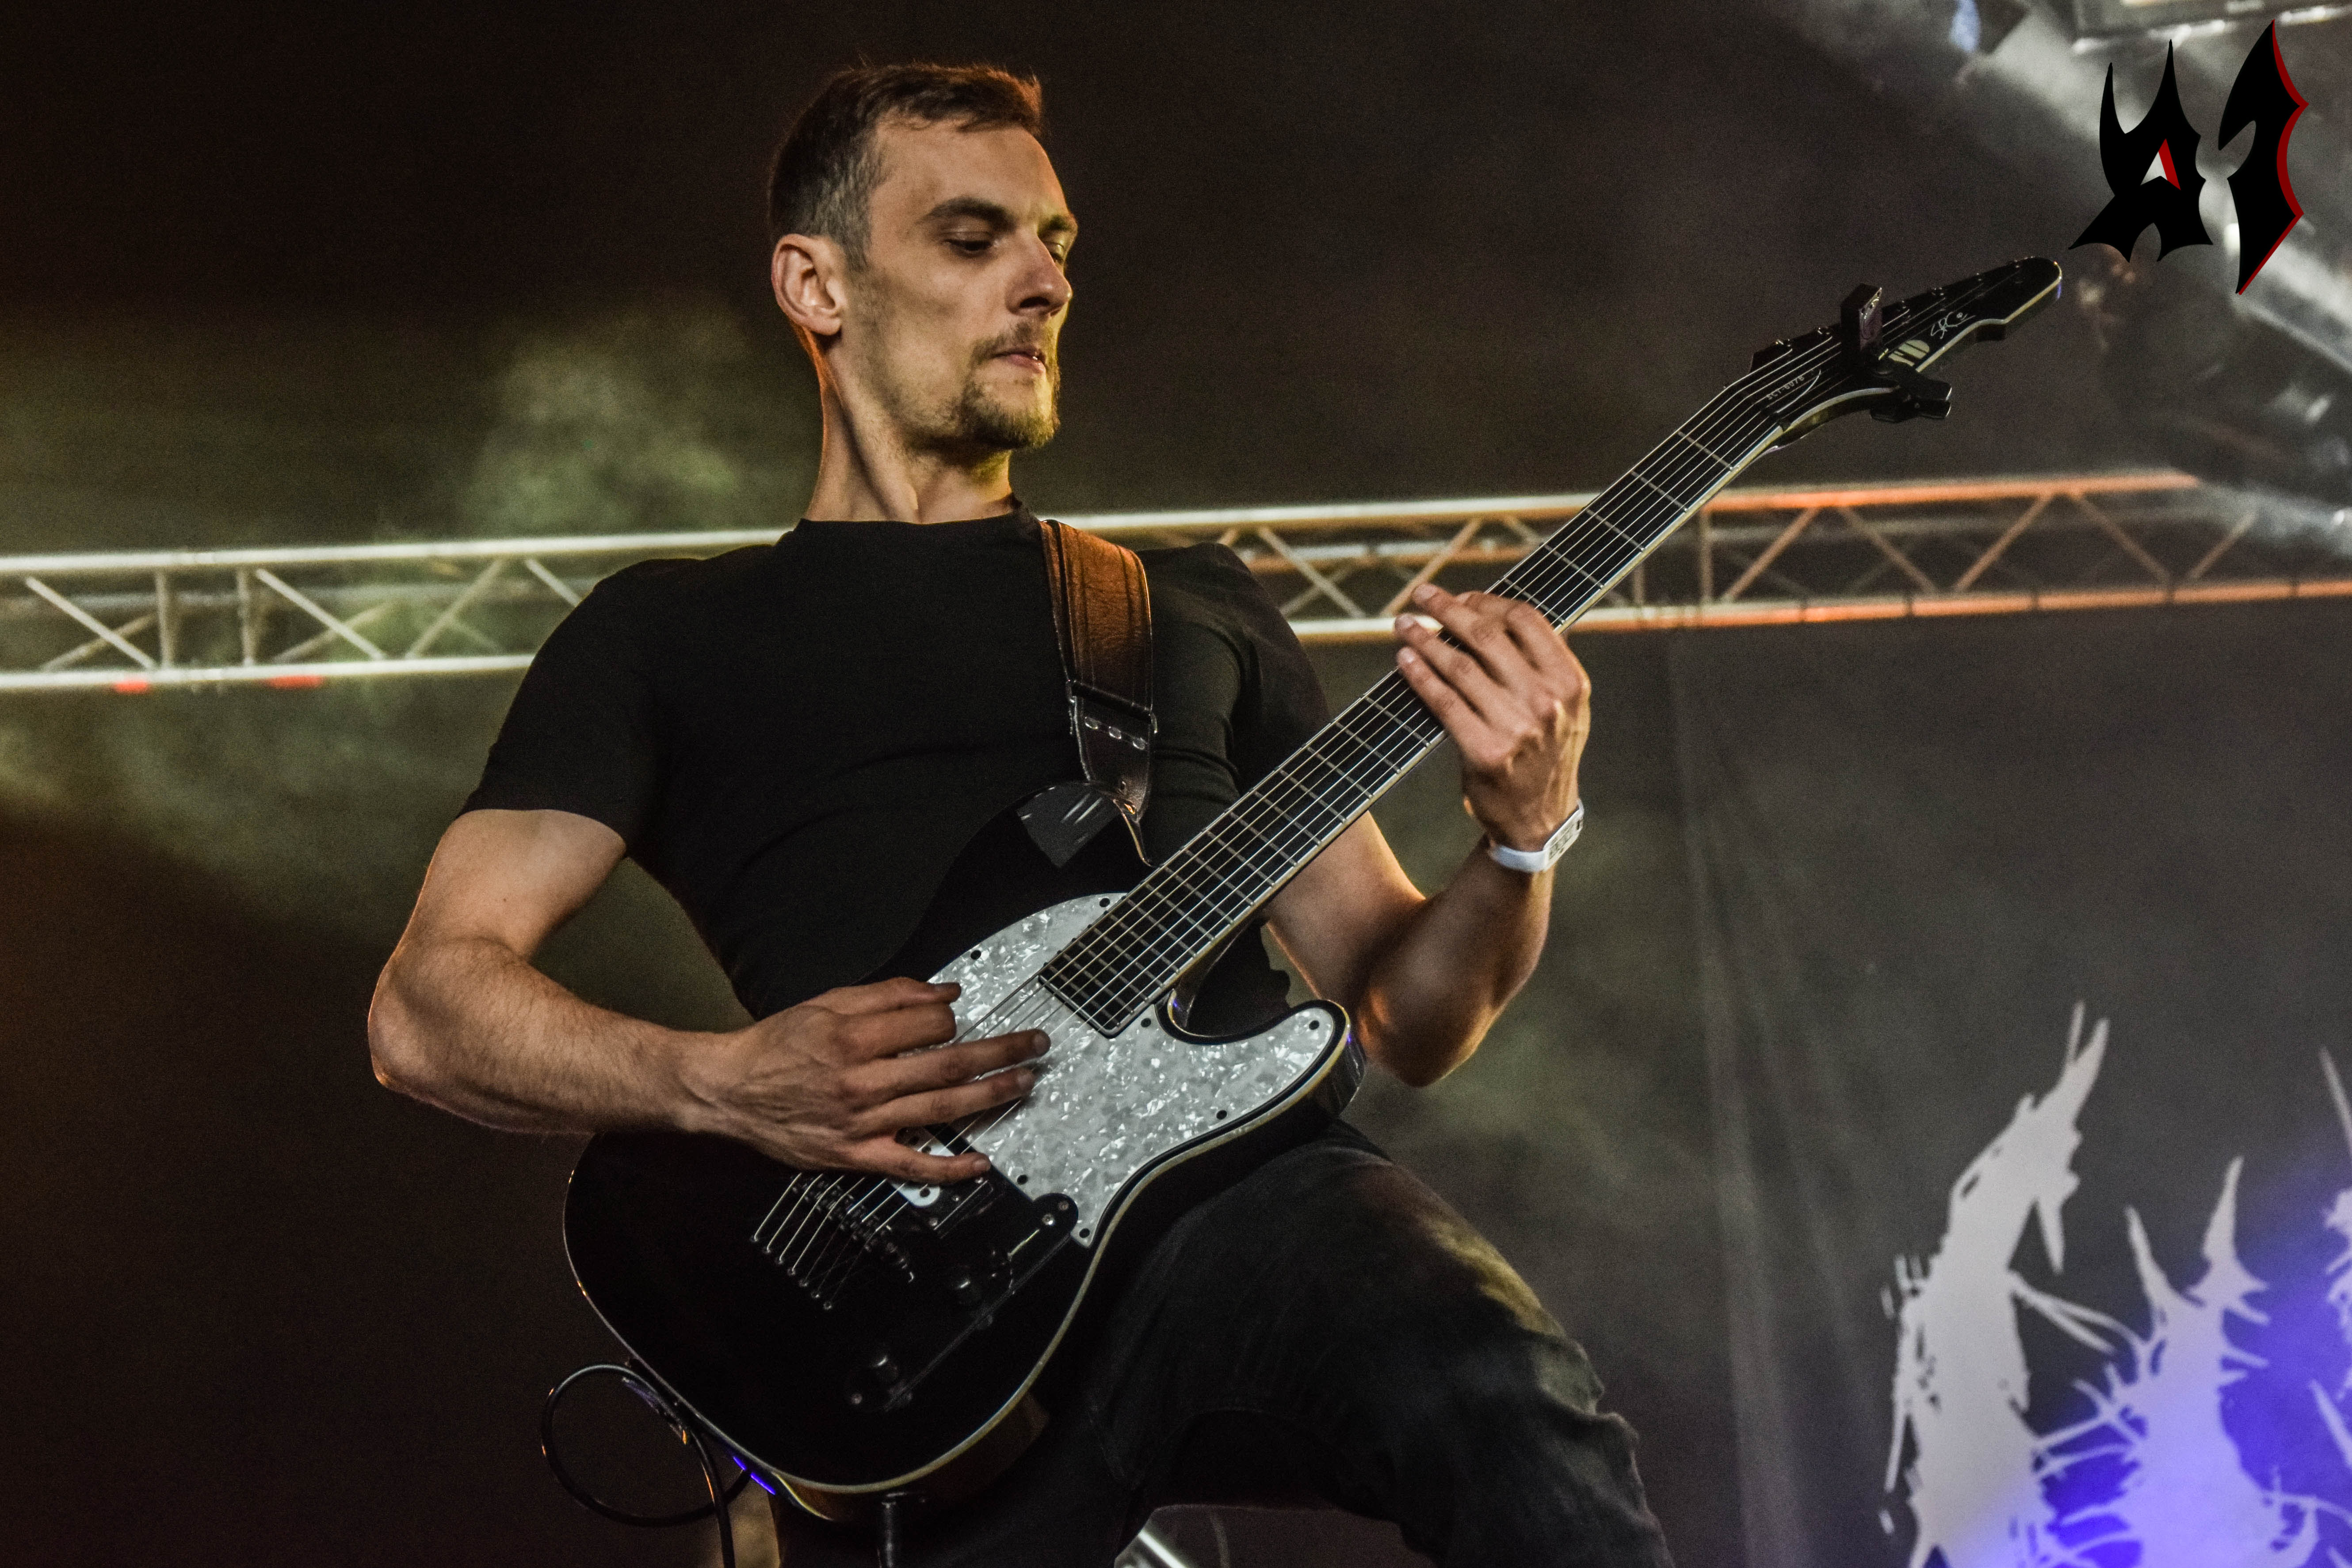 Hellfest - Day 1 - The Walking Dead Orchestra - 2